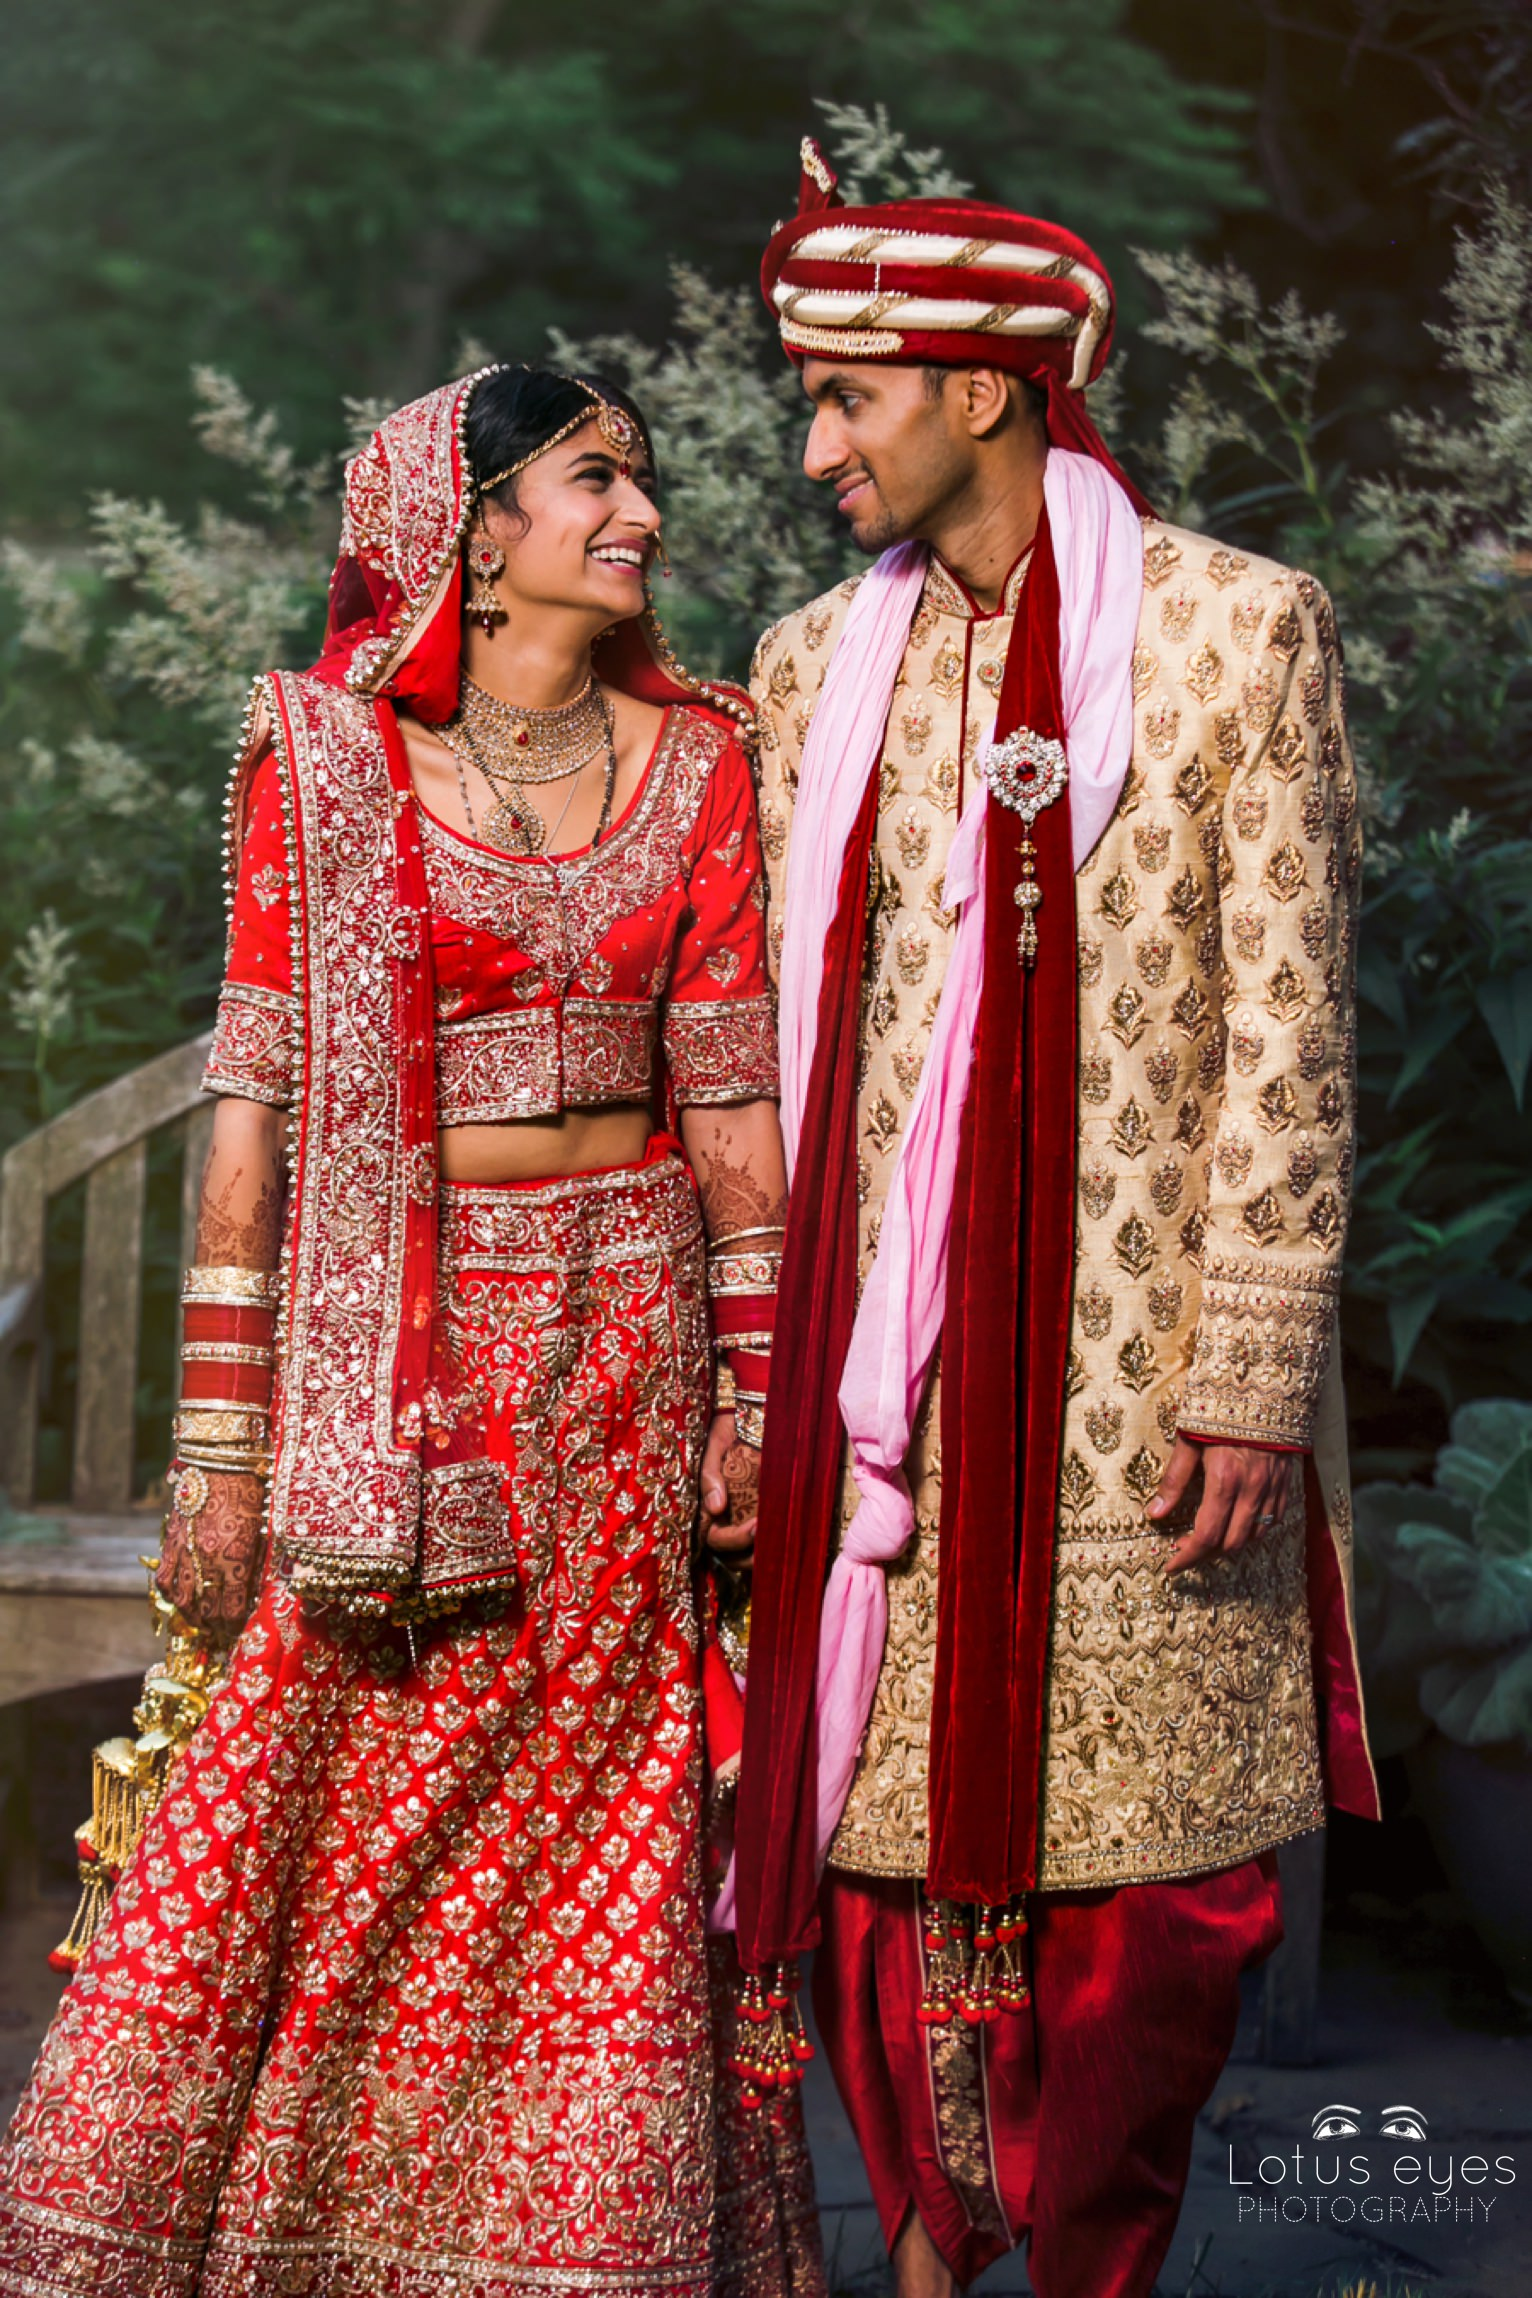 Indian Wedding photography Orlando